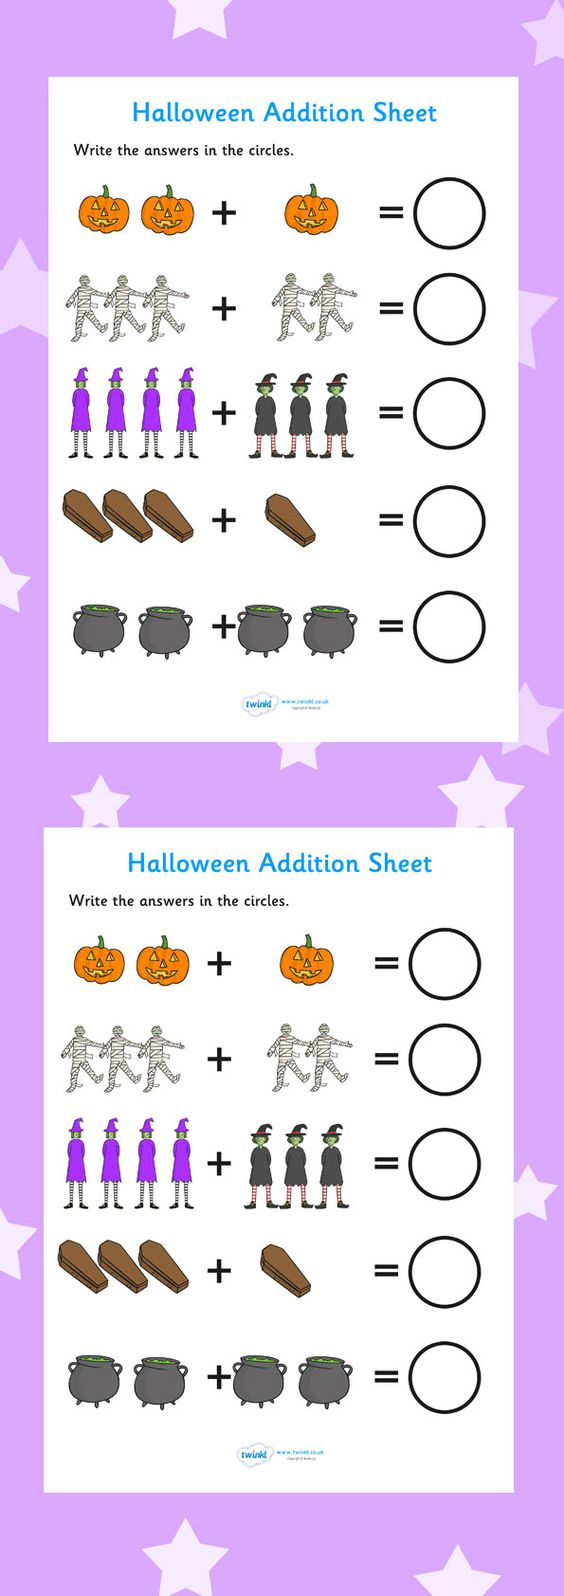 twinkl resources halloween addition worksheet printable resources for primary eyfs ks1. Black Bedroom Furniture Sets. Home Design Ideas